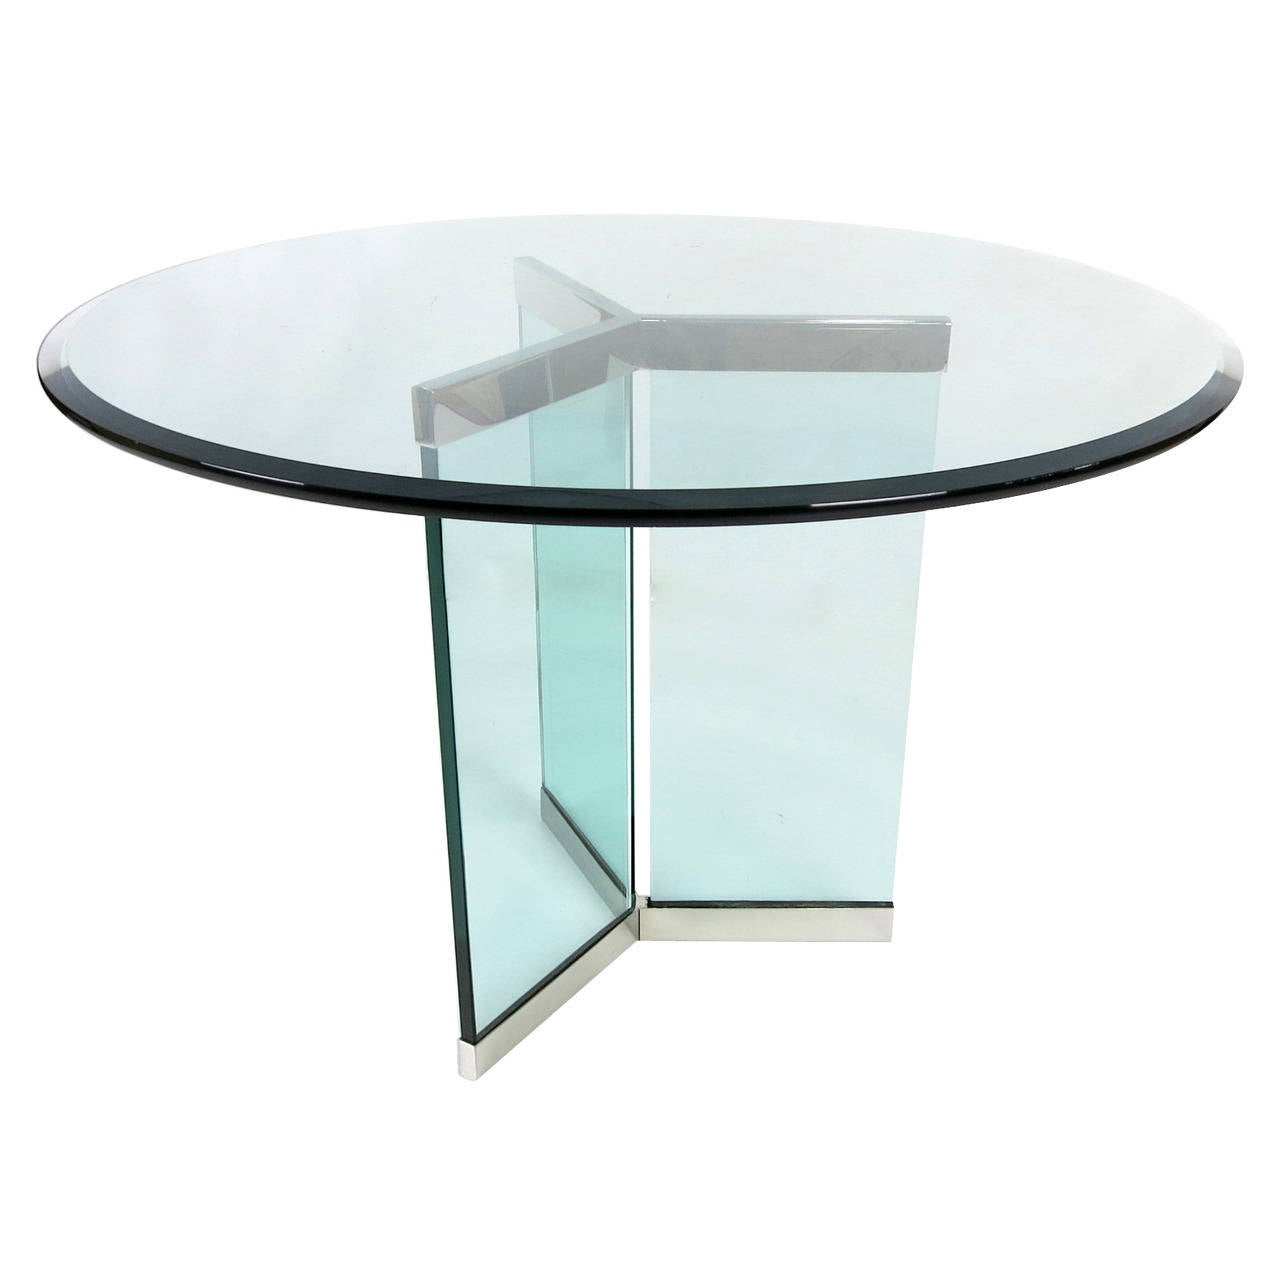 Pair of Stainless Steel Delta Form Table Bases by Pace